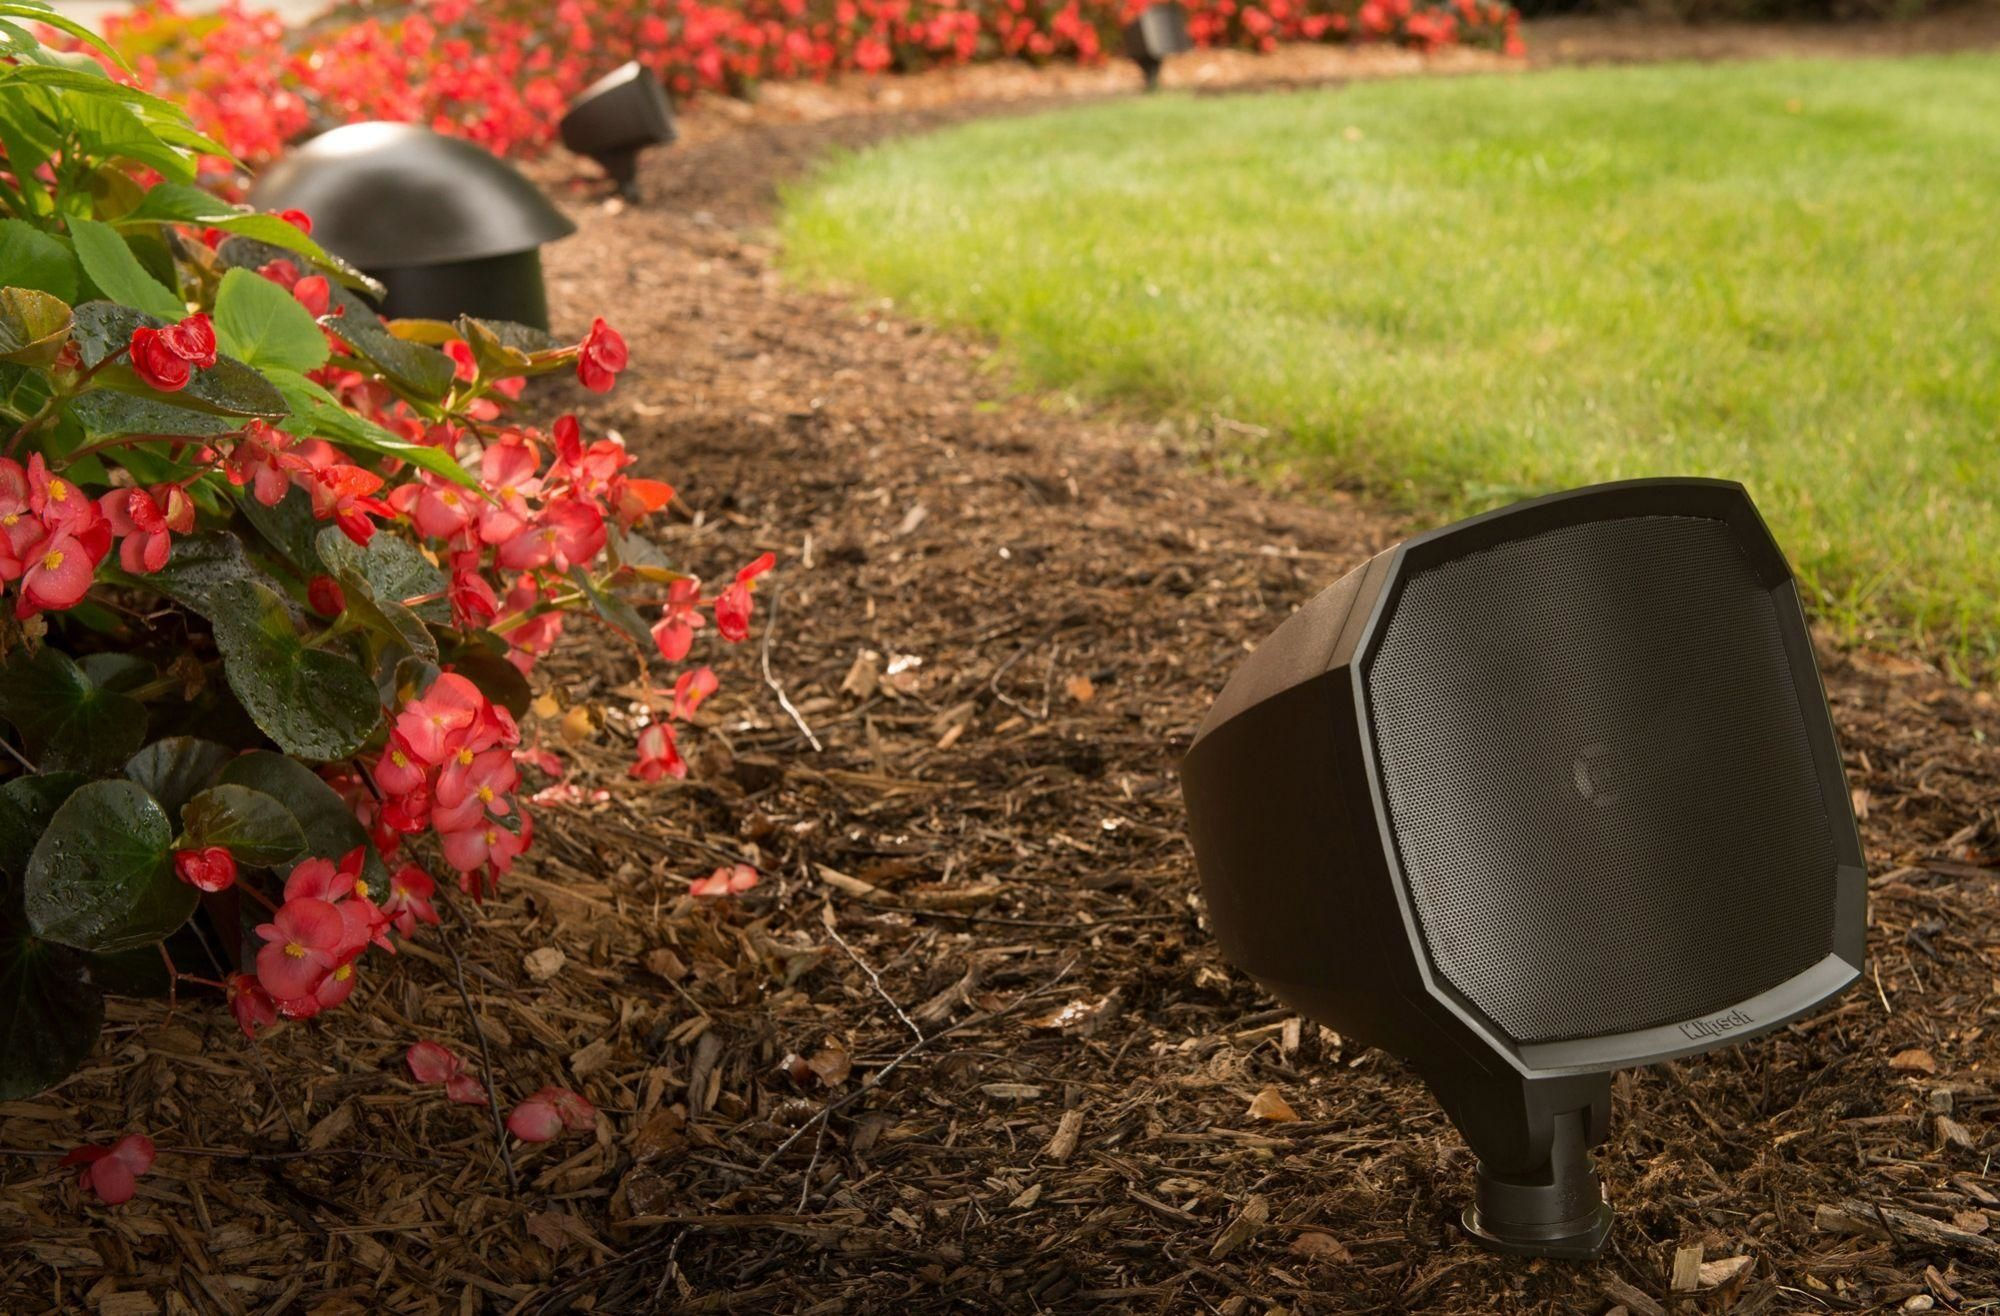 Klipsch Landscape Speakers in a garden